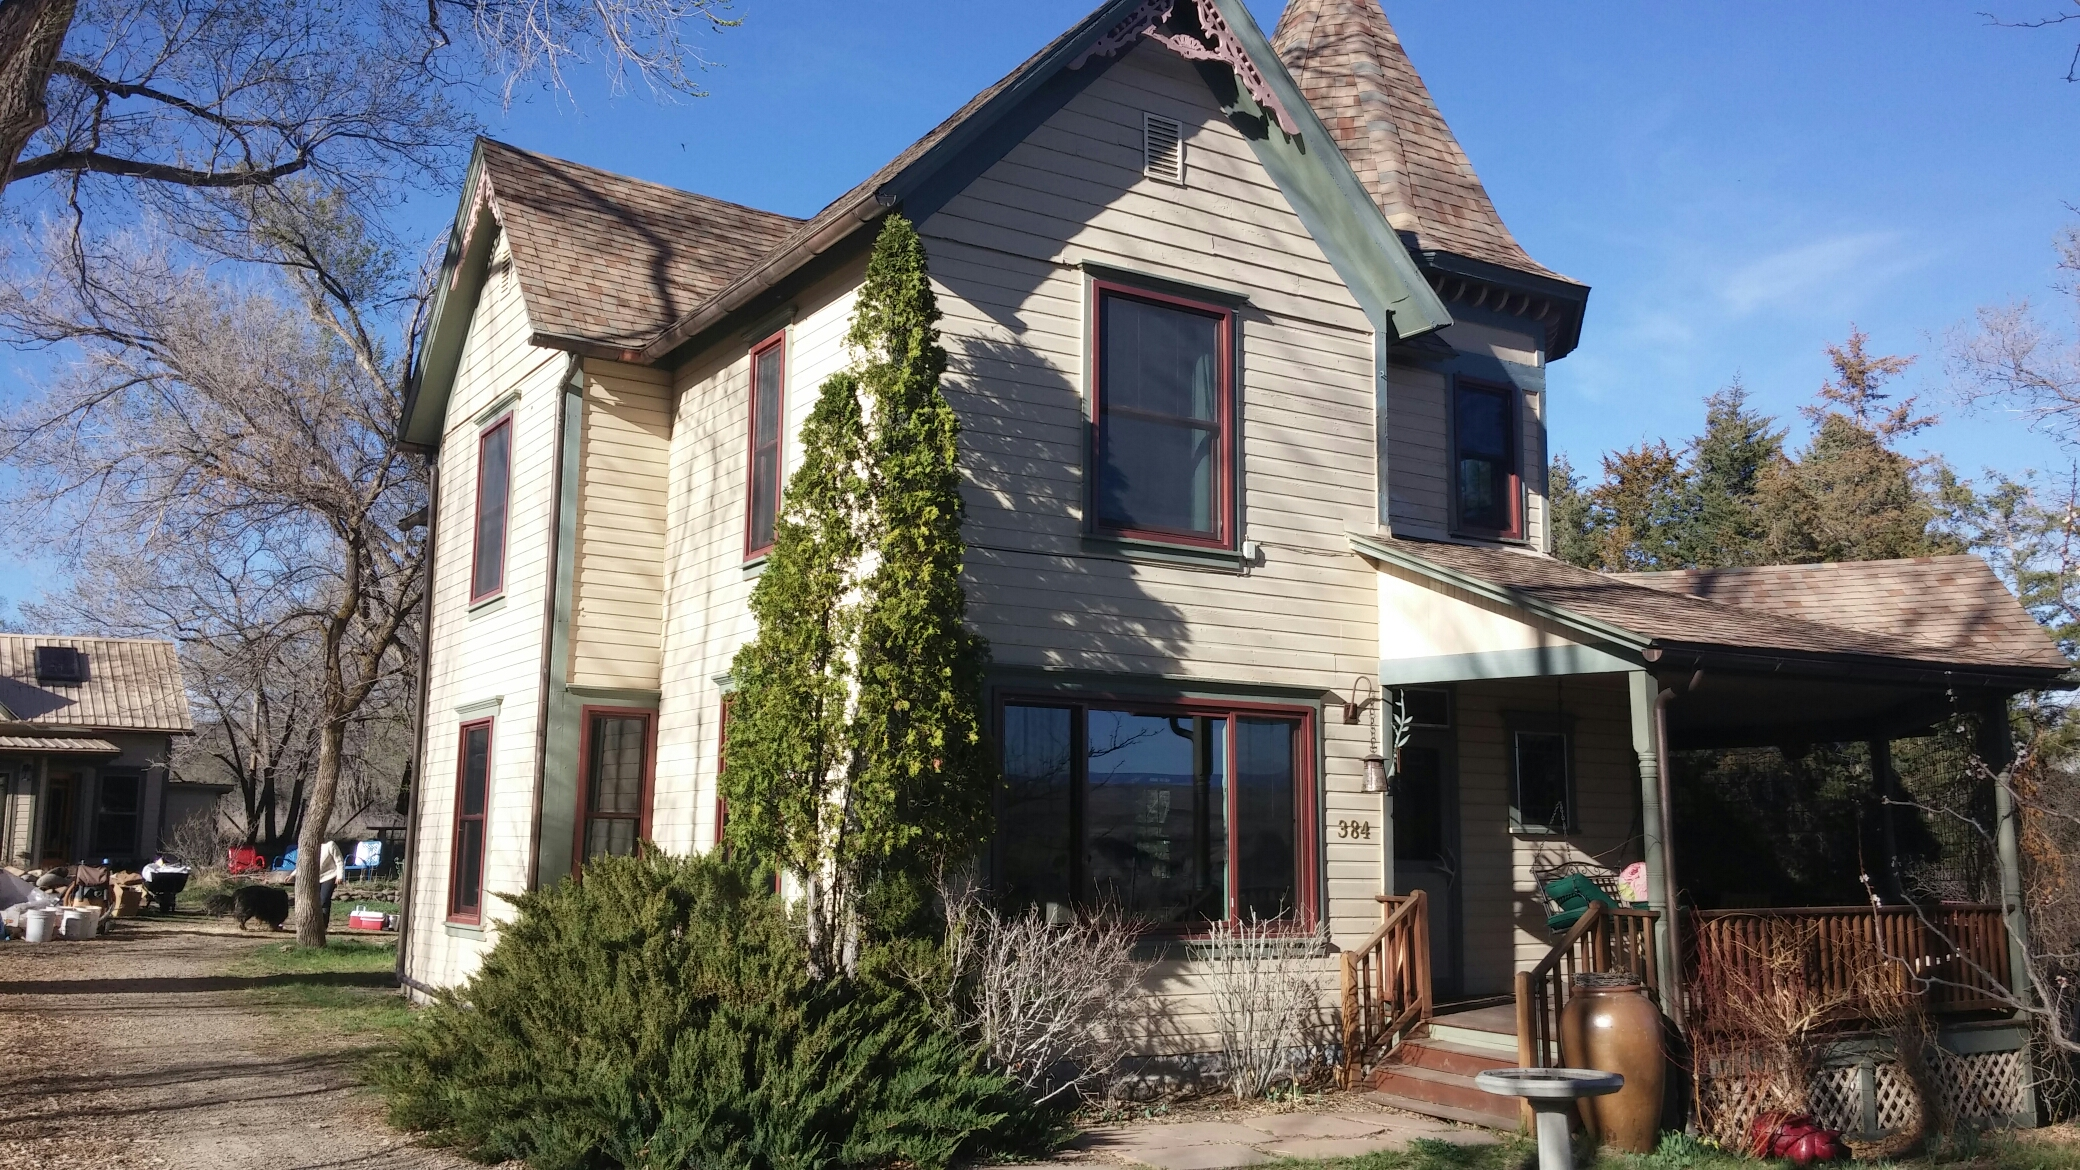 Hotchkiss, CO - Just did a final measure to finish up this 100 year old home with Renewal By Andersen dual color windows in Red Rock exterior and canvas interior. The customers cant wait to finalize there project.